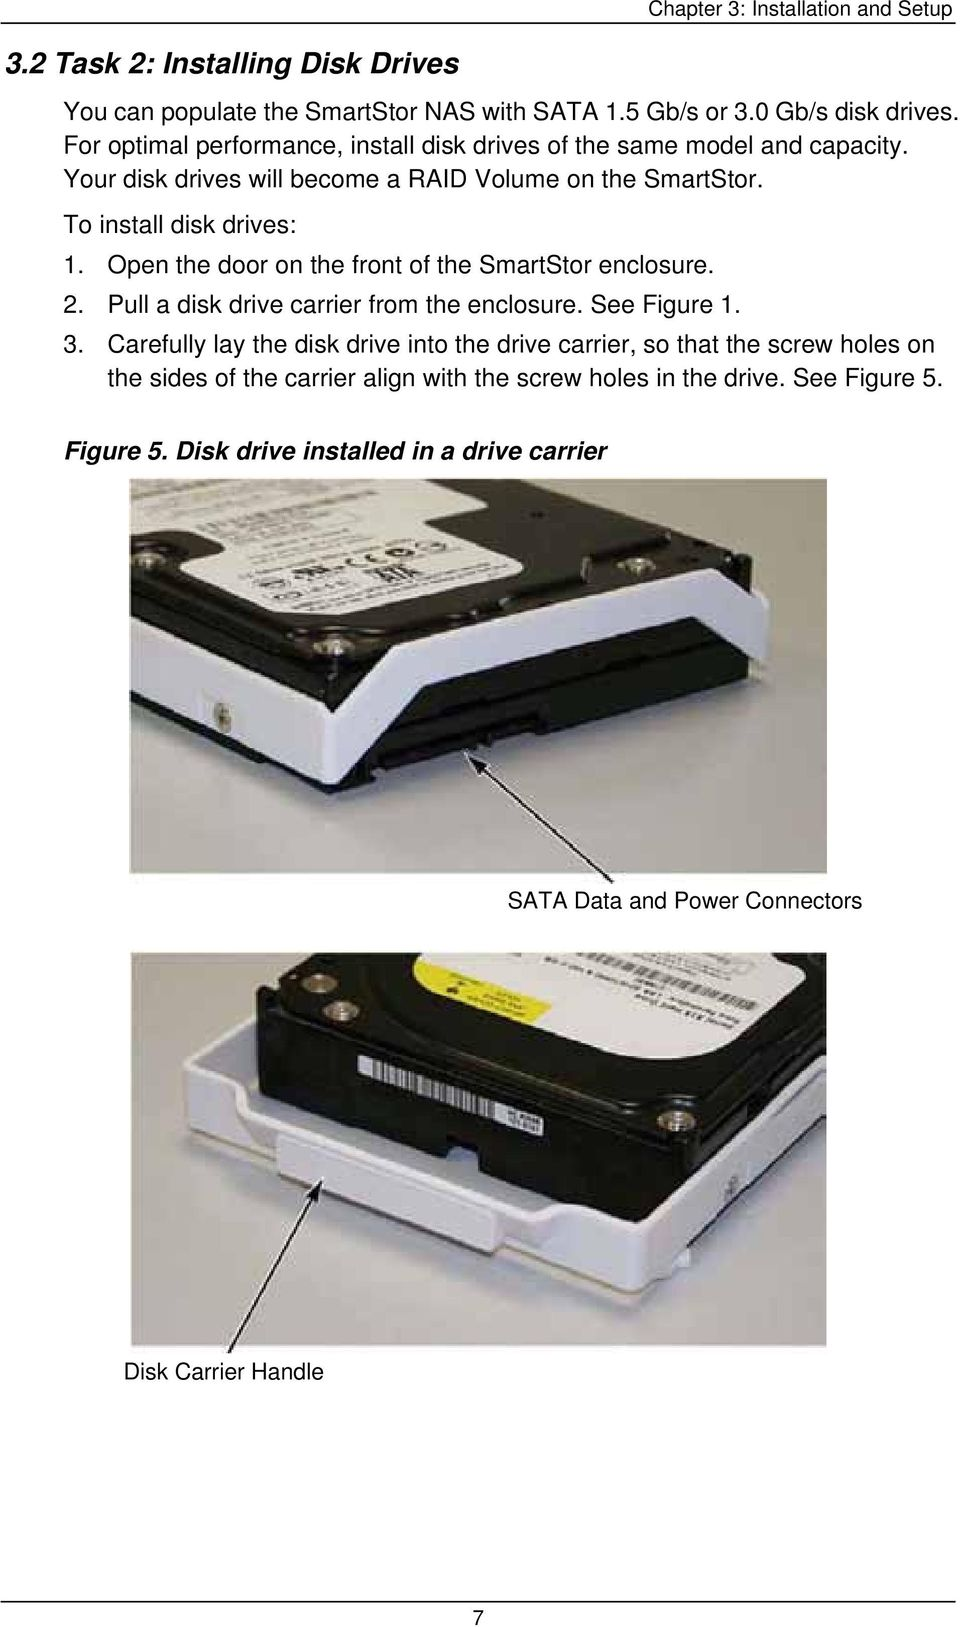 Open the door on the front of the SmartStor enclosure. 2. Pull a disk drive carrier from the enclosure. See Figure 1. 3.